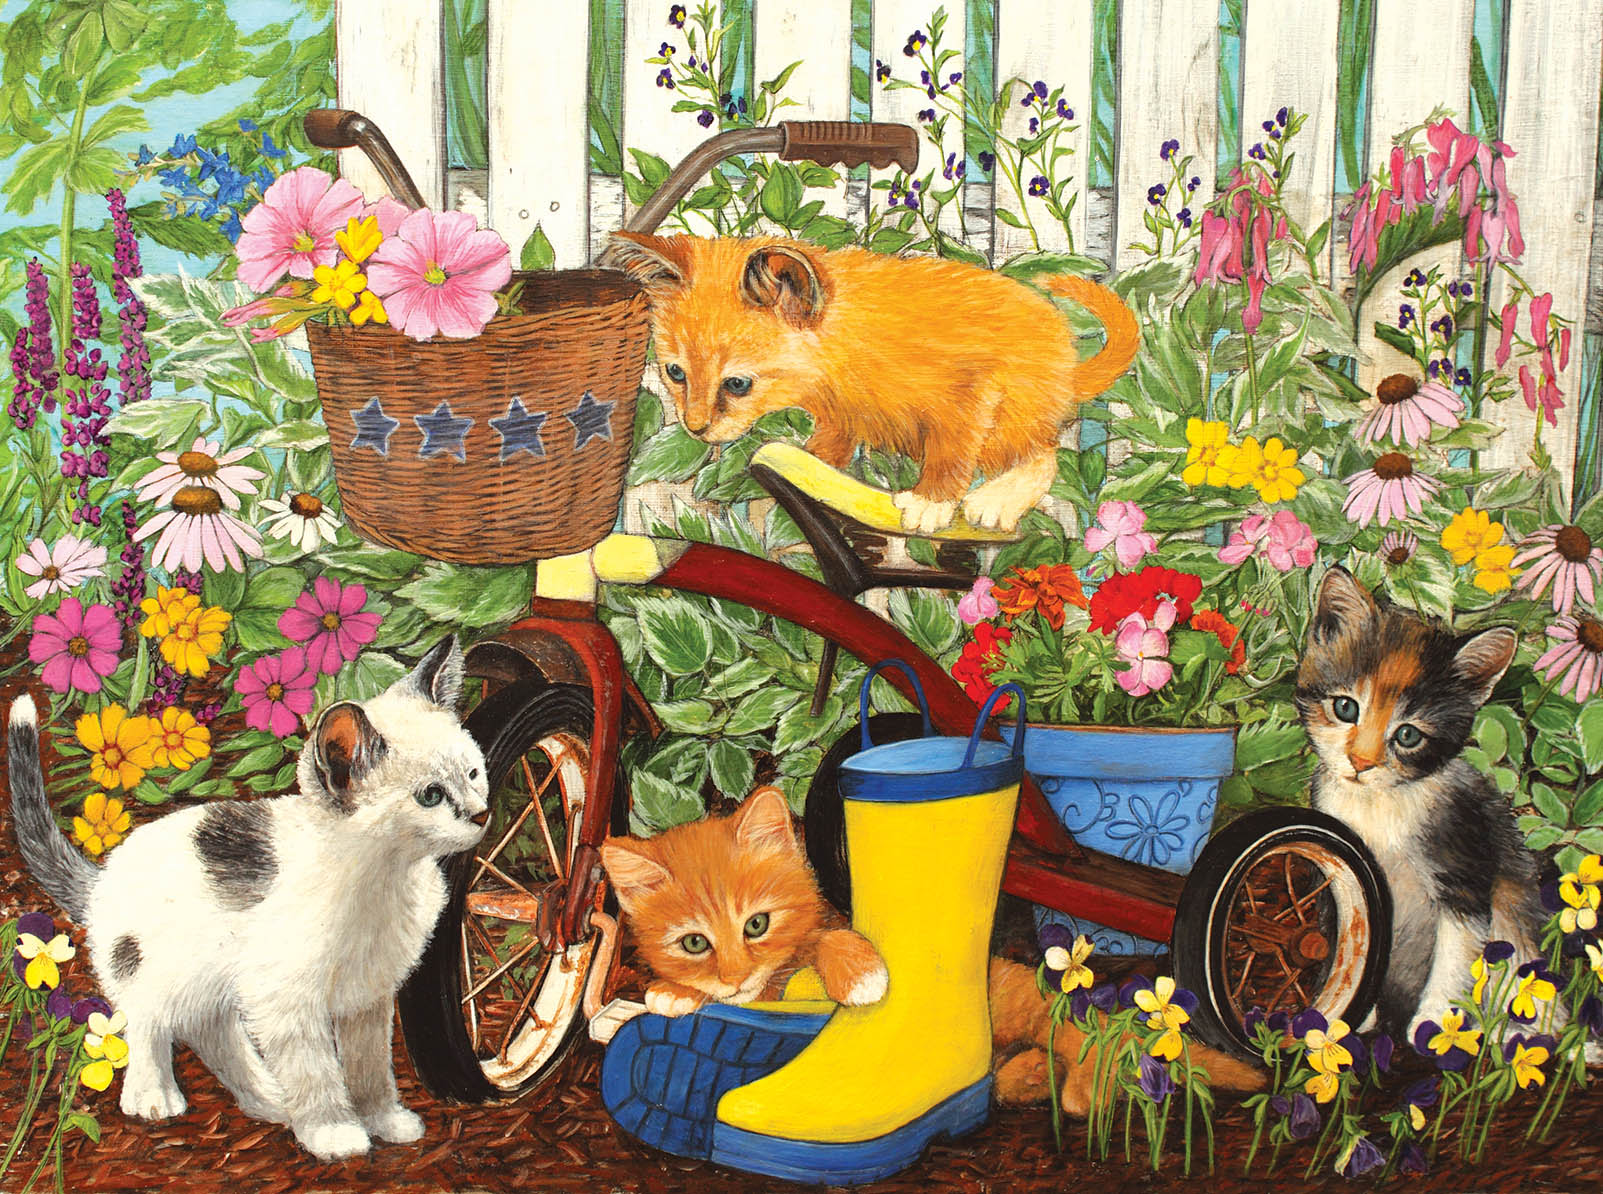 I Can't reach the Pedals! Garden Jigsaw Puzzle